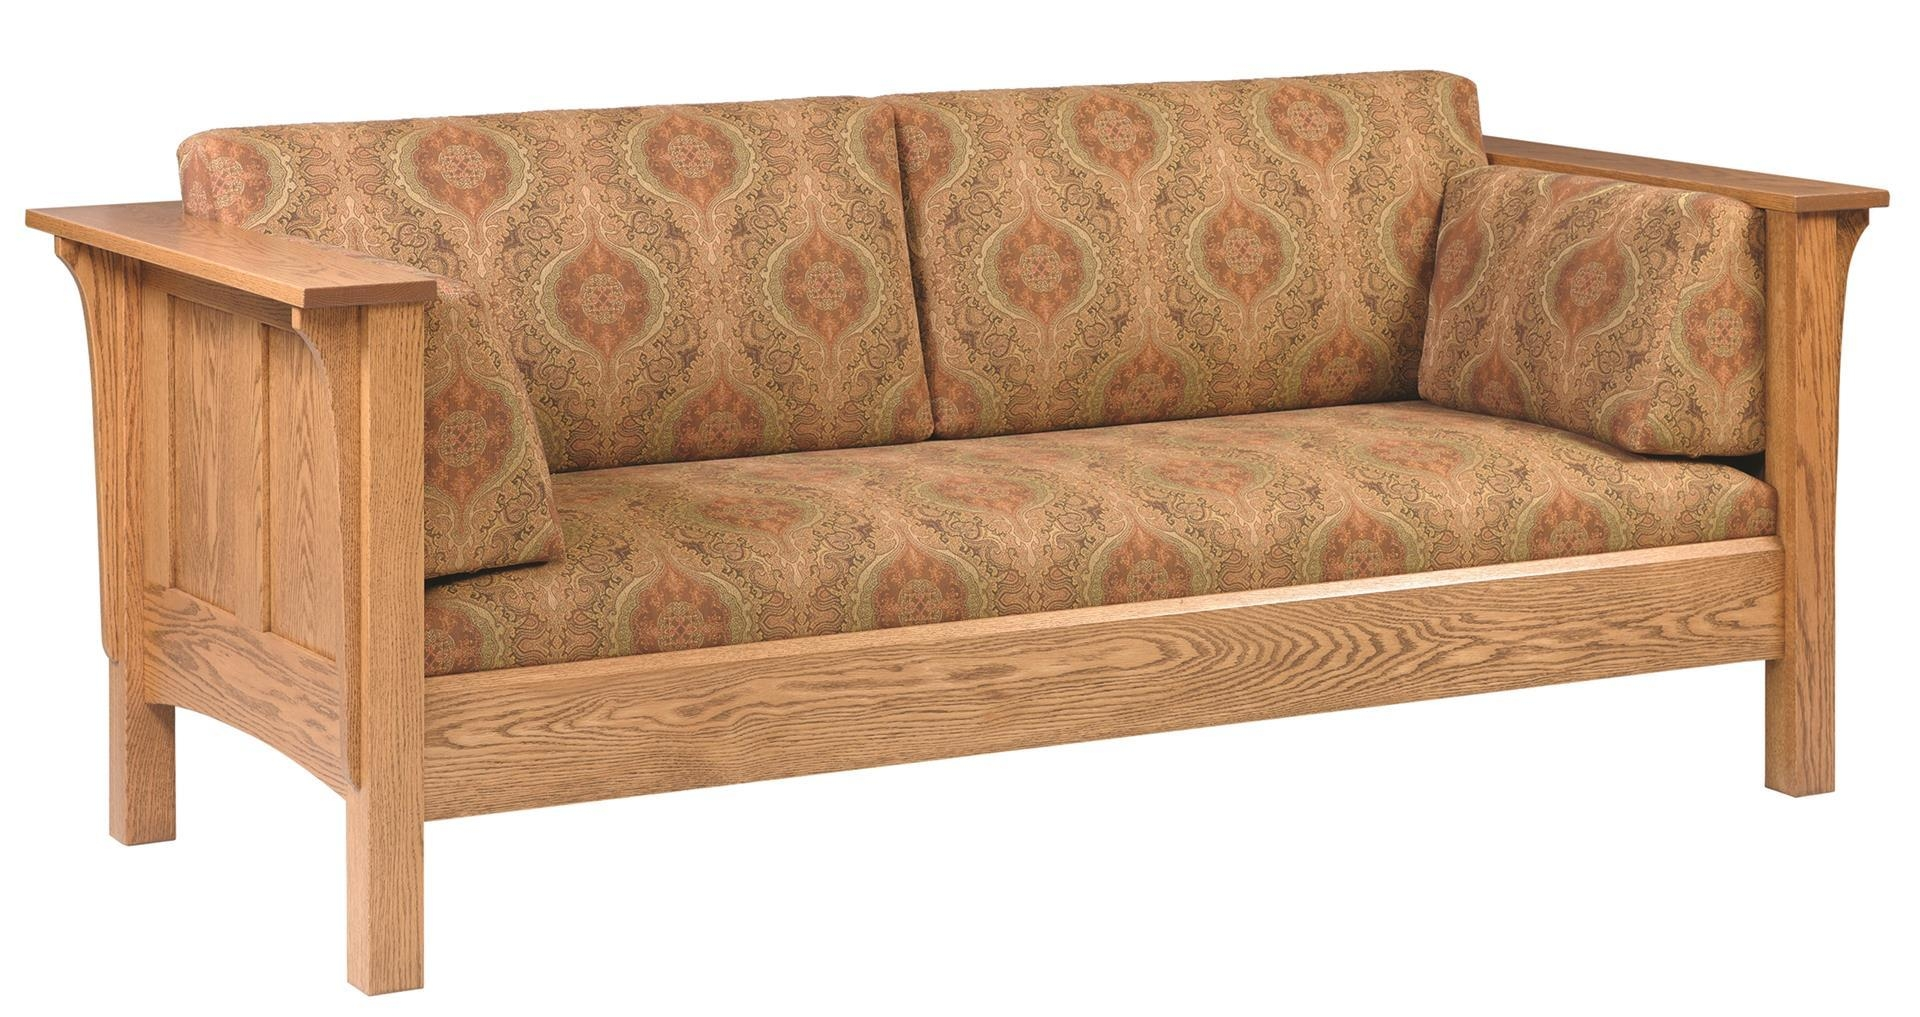 Amish Sofa – Gallery Image Serenityrealm Throughout Shaker Sofas (Image 3 of 20)